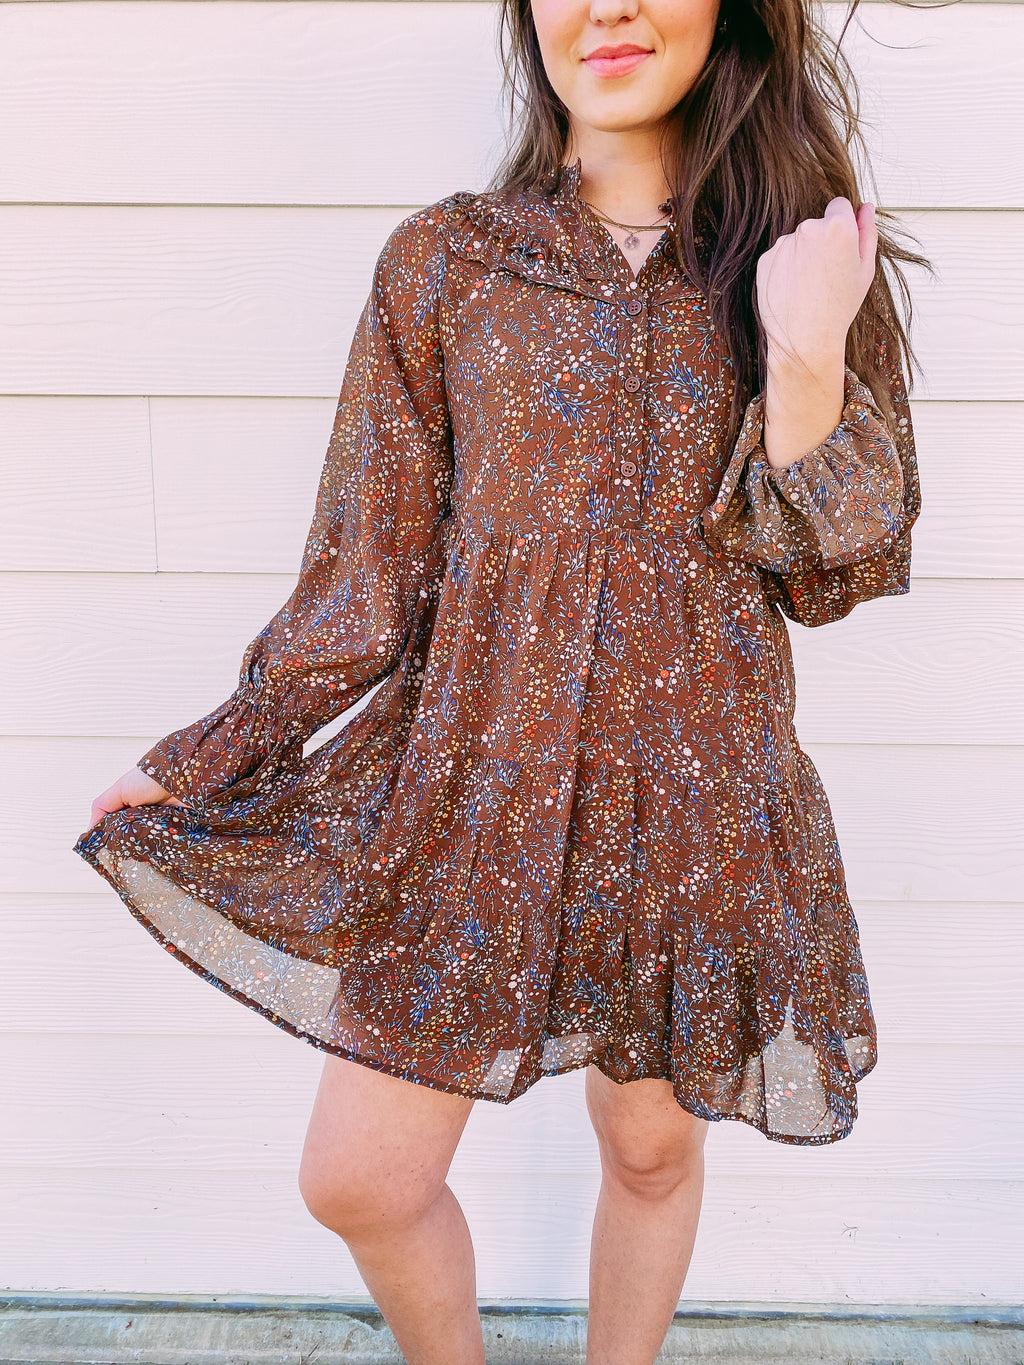 Surefire Floral Print Dress - brown